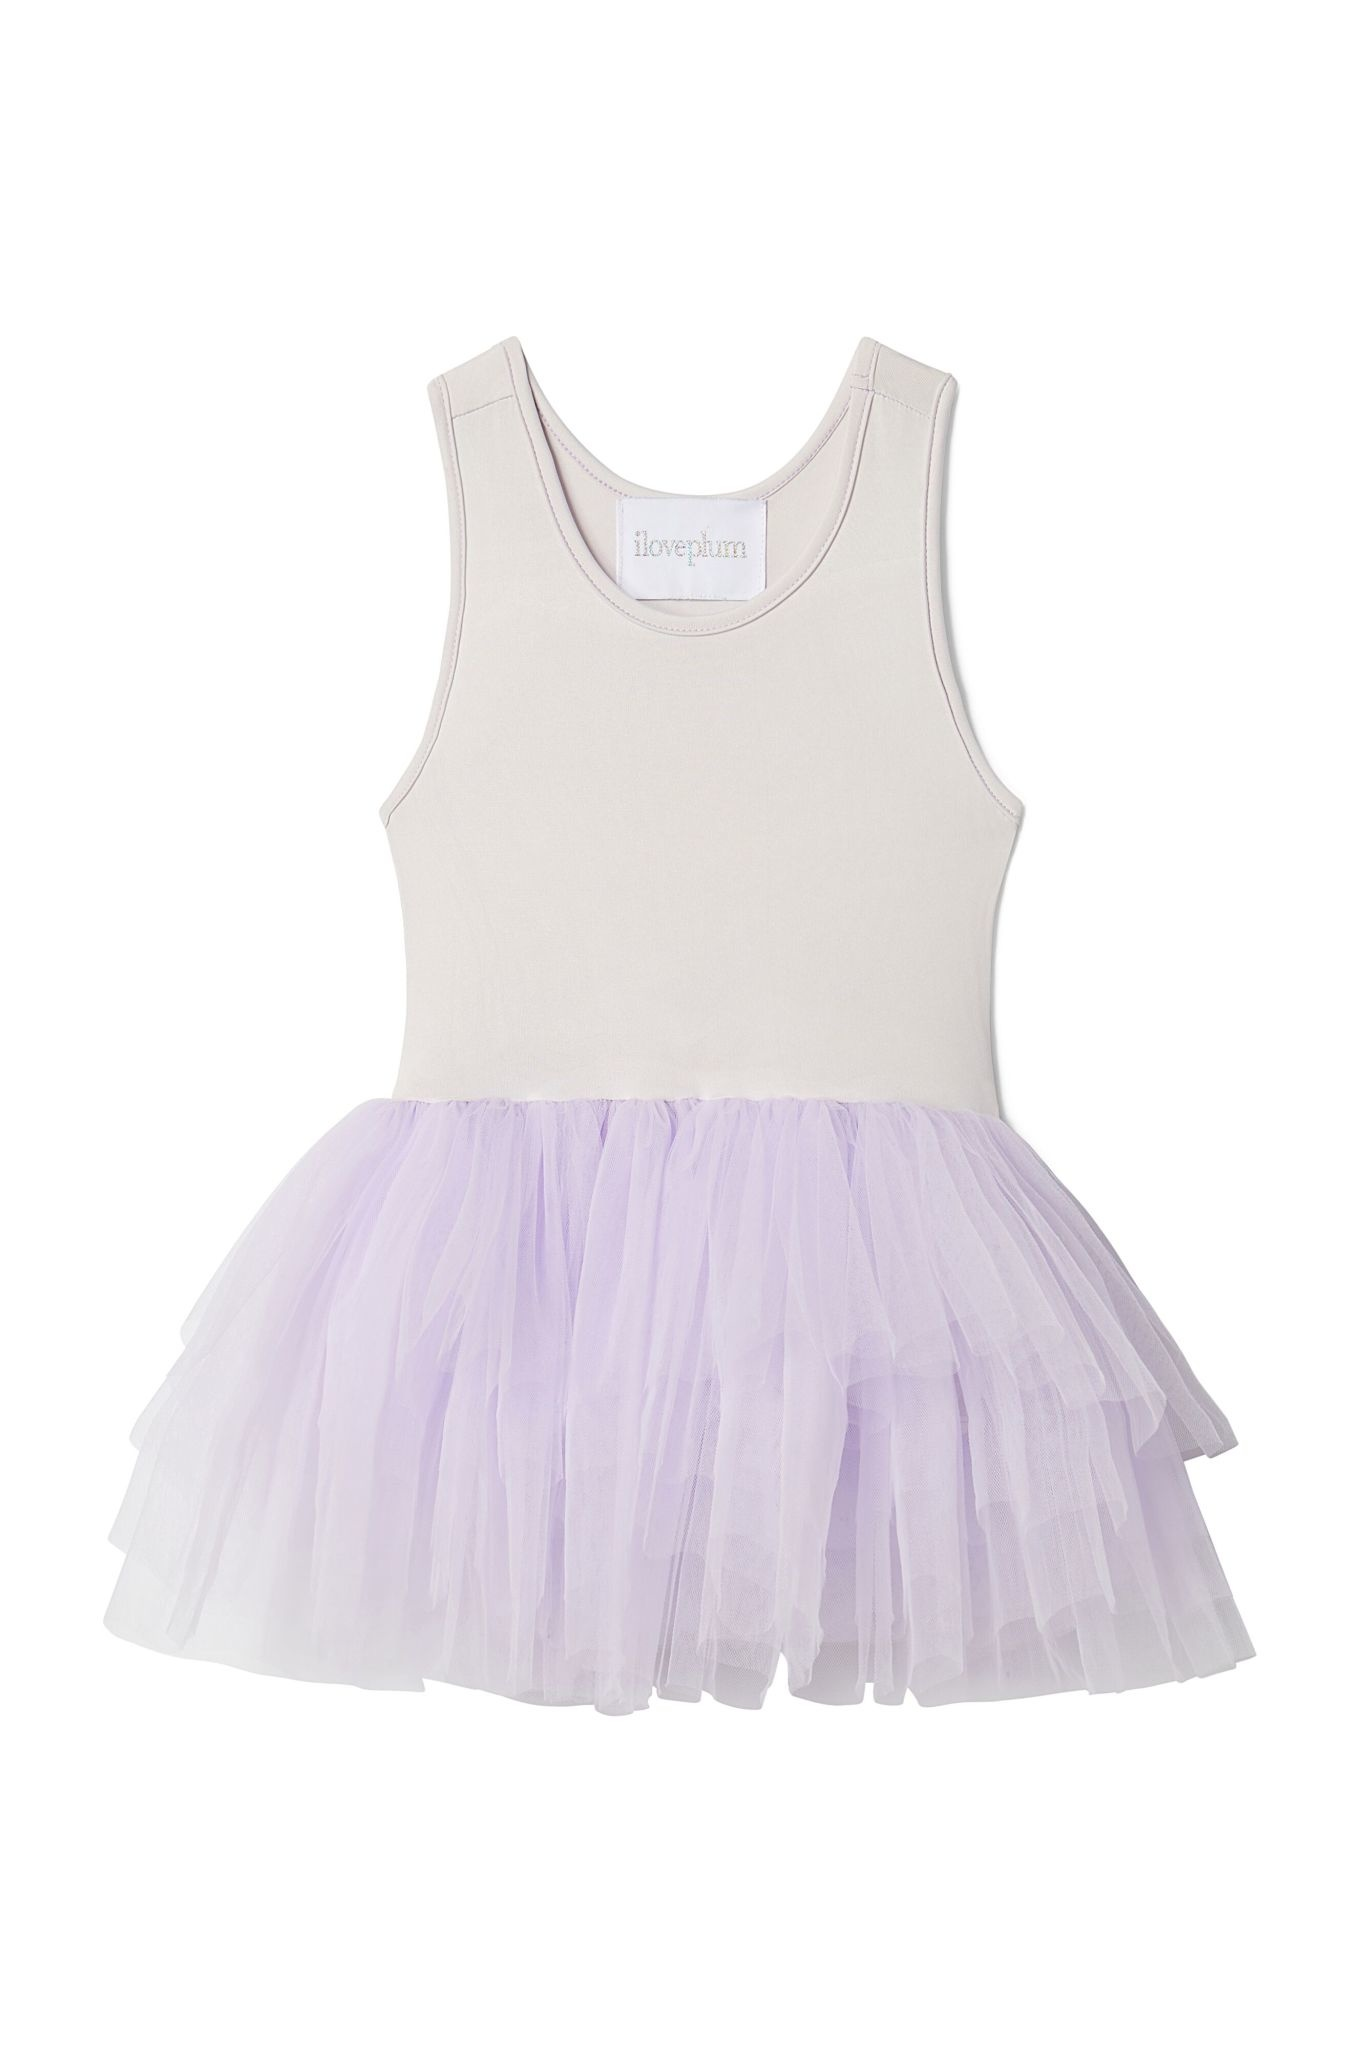 PLUM Baby Billie Tutu